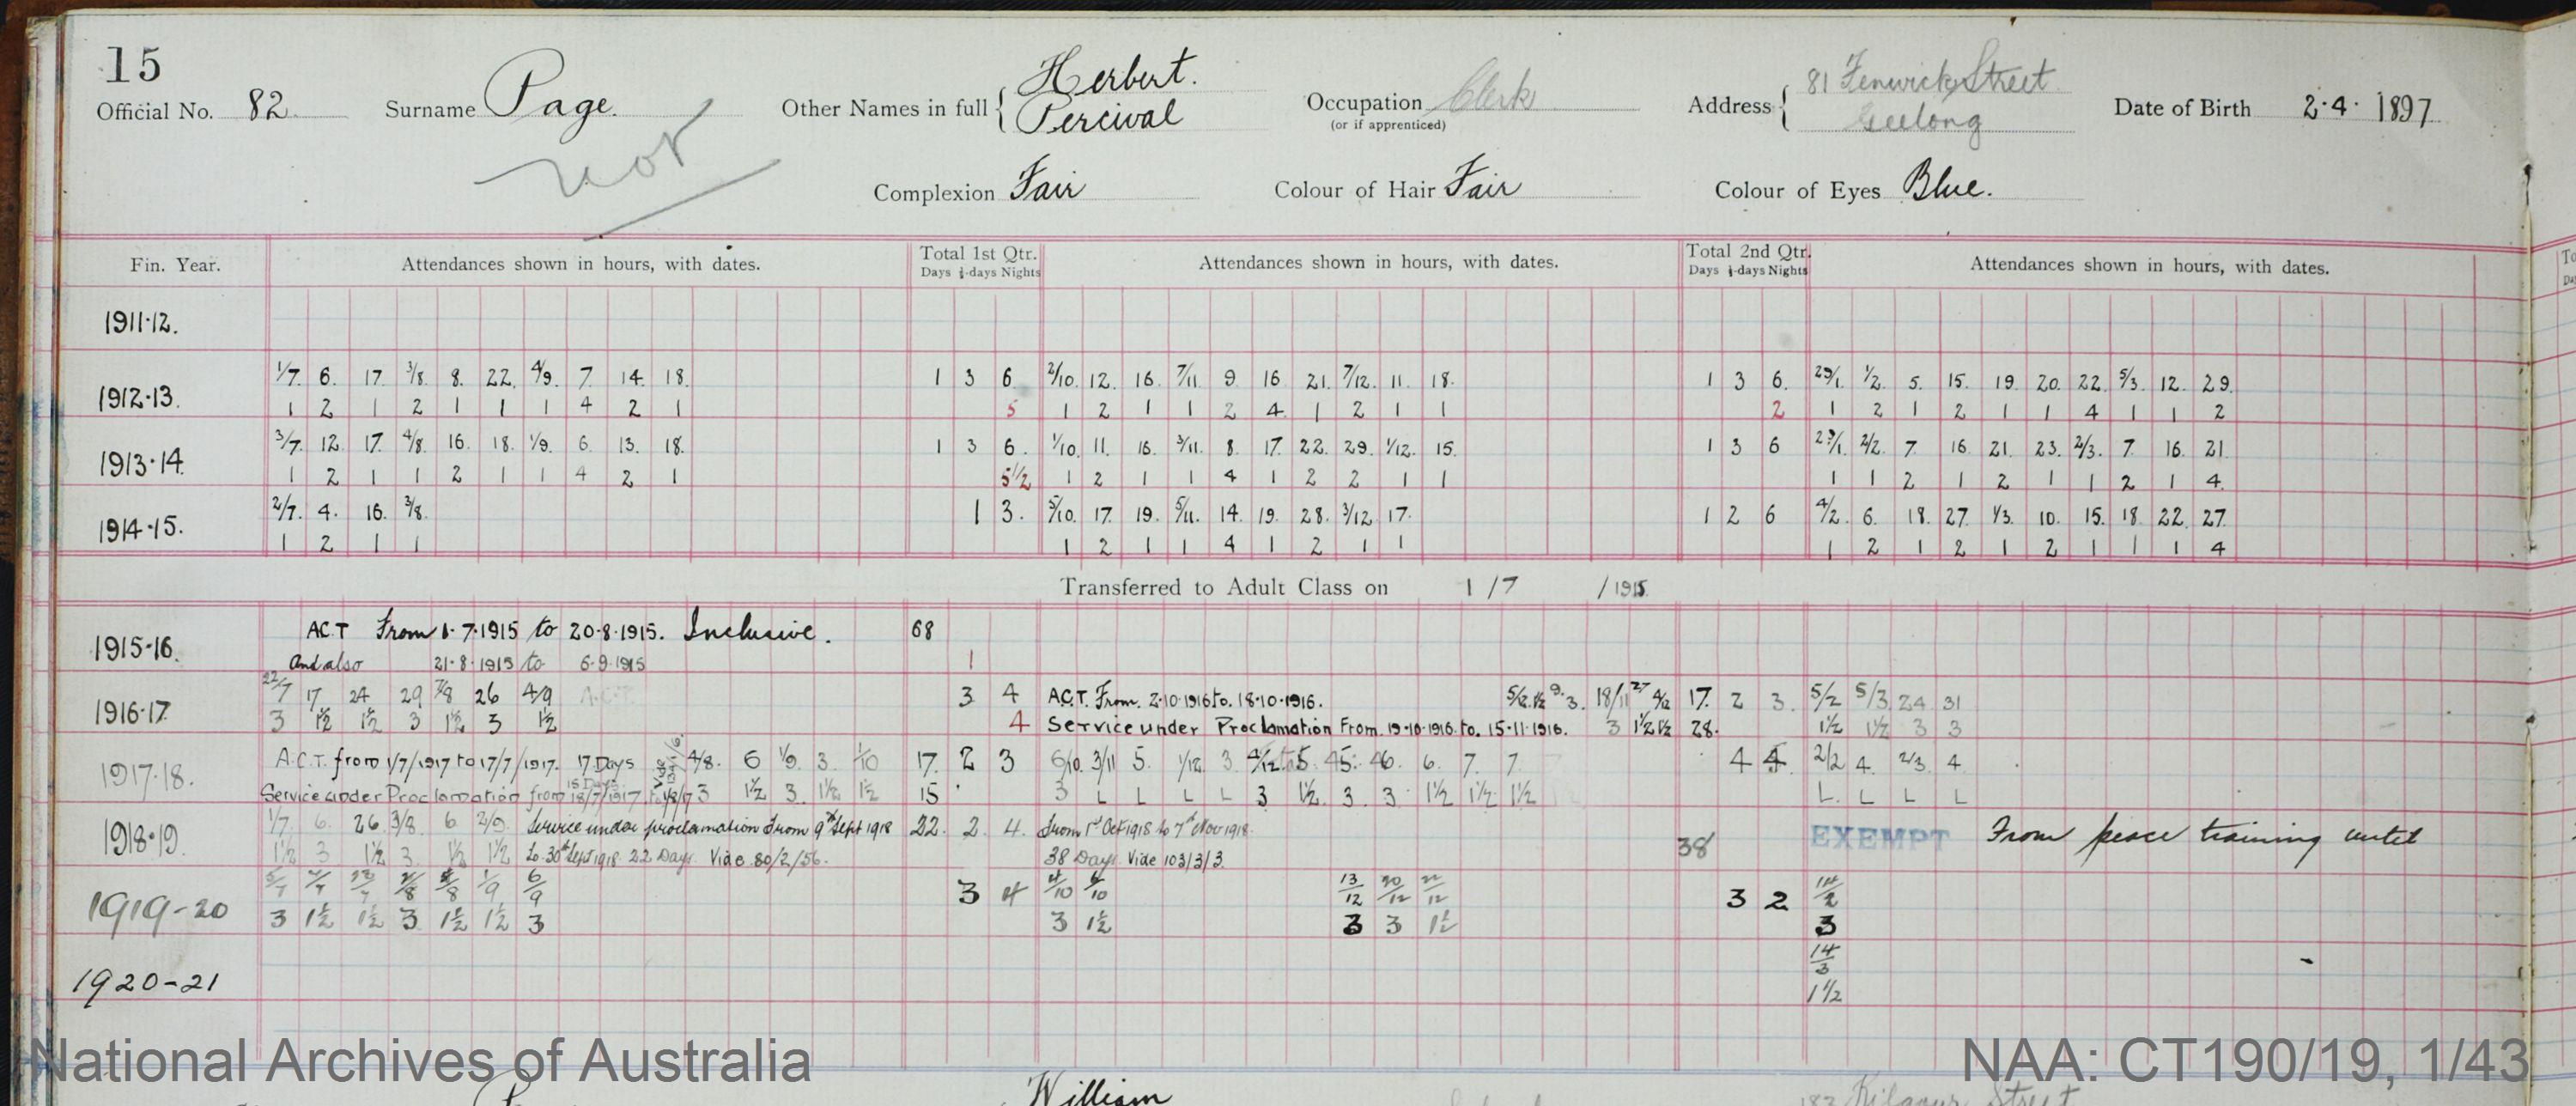 SURNAME - PAGE;  GIVEN NAME(S) - Herbert Percival;  OFFICIAL NUMBER - 82;  DATE OF BIRTH - 2 April 1897;  PLACE OF BIRTH - [Unknown];  NEXT OF KIN - [Unknown] ;  SERVICE/STATION - Geelong;  REGISTRATION DATE - 31 January 1911